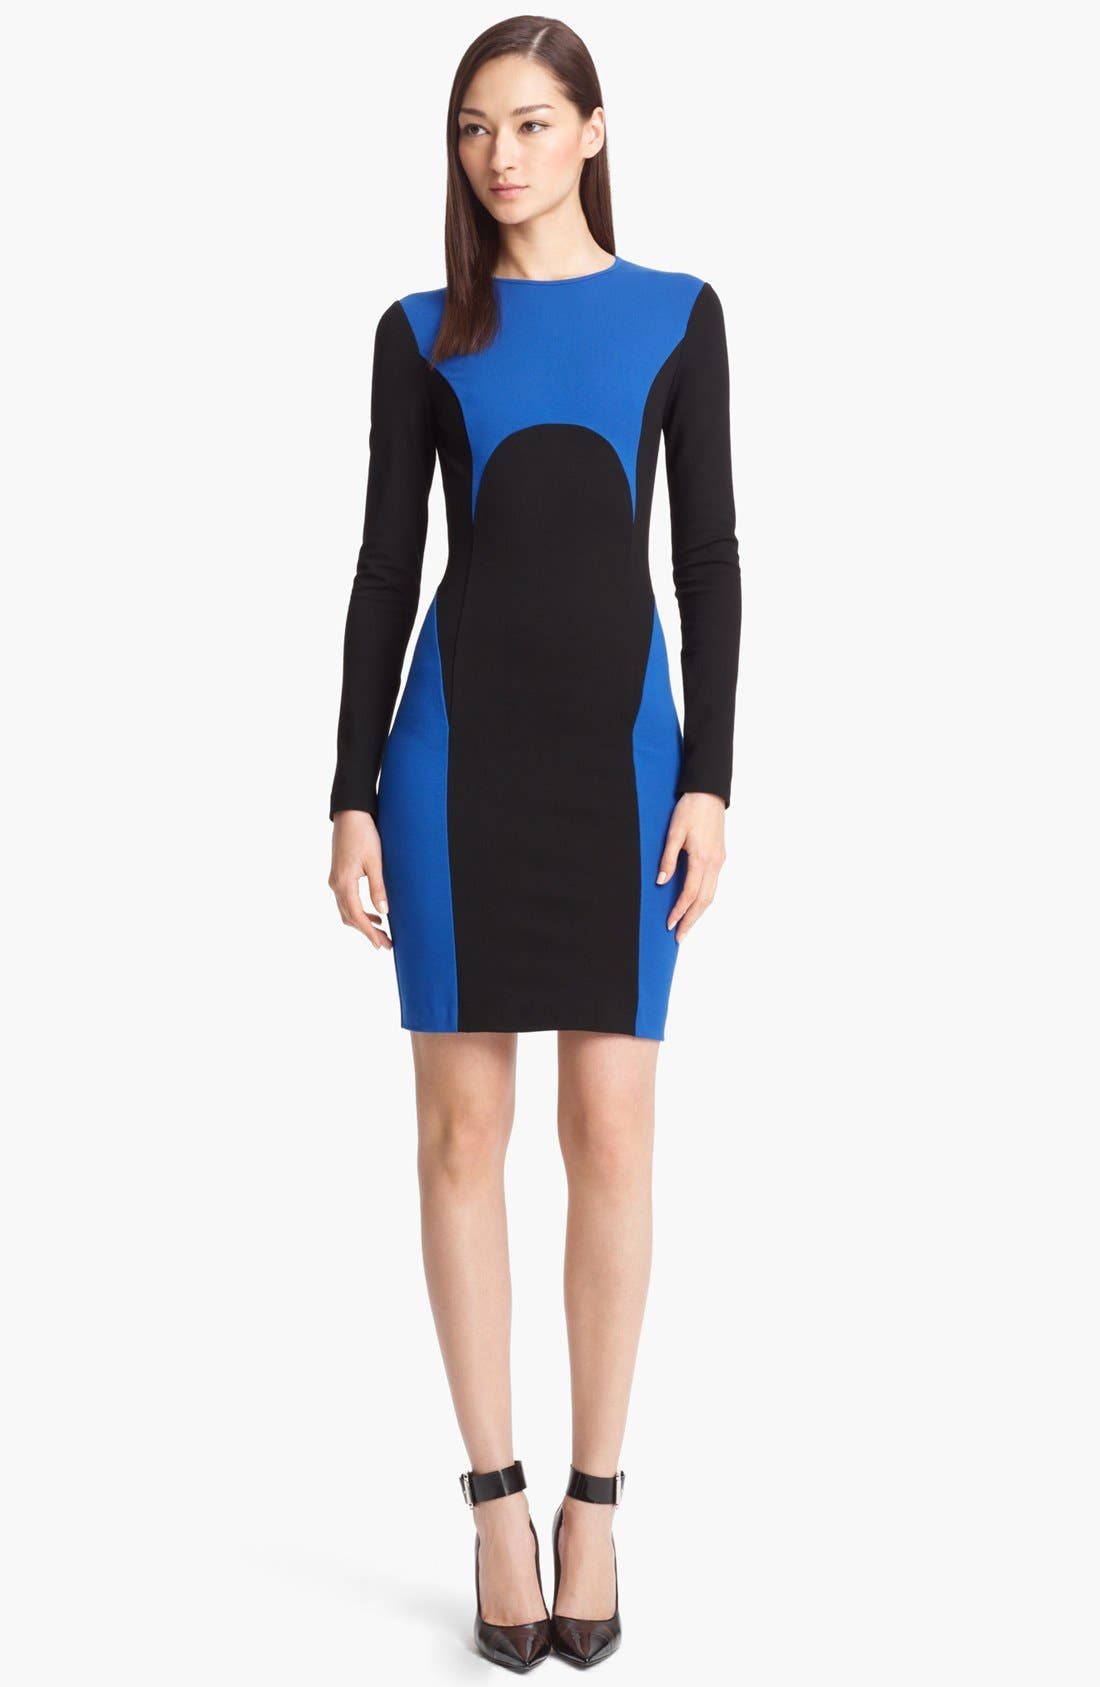 Main Image - Michael Kors Colorblock Jersey Dress